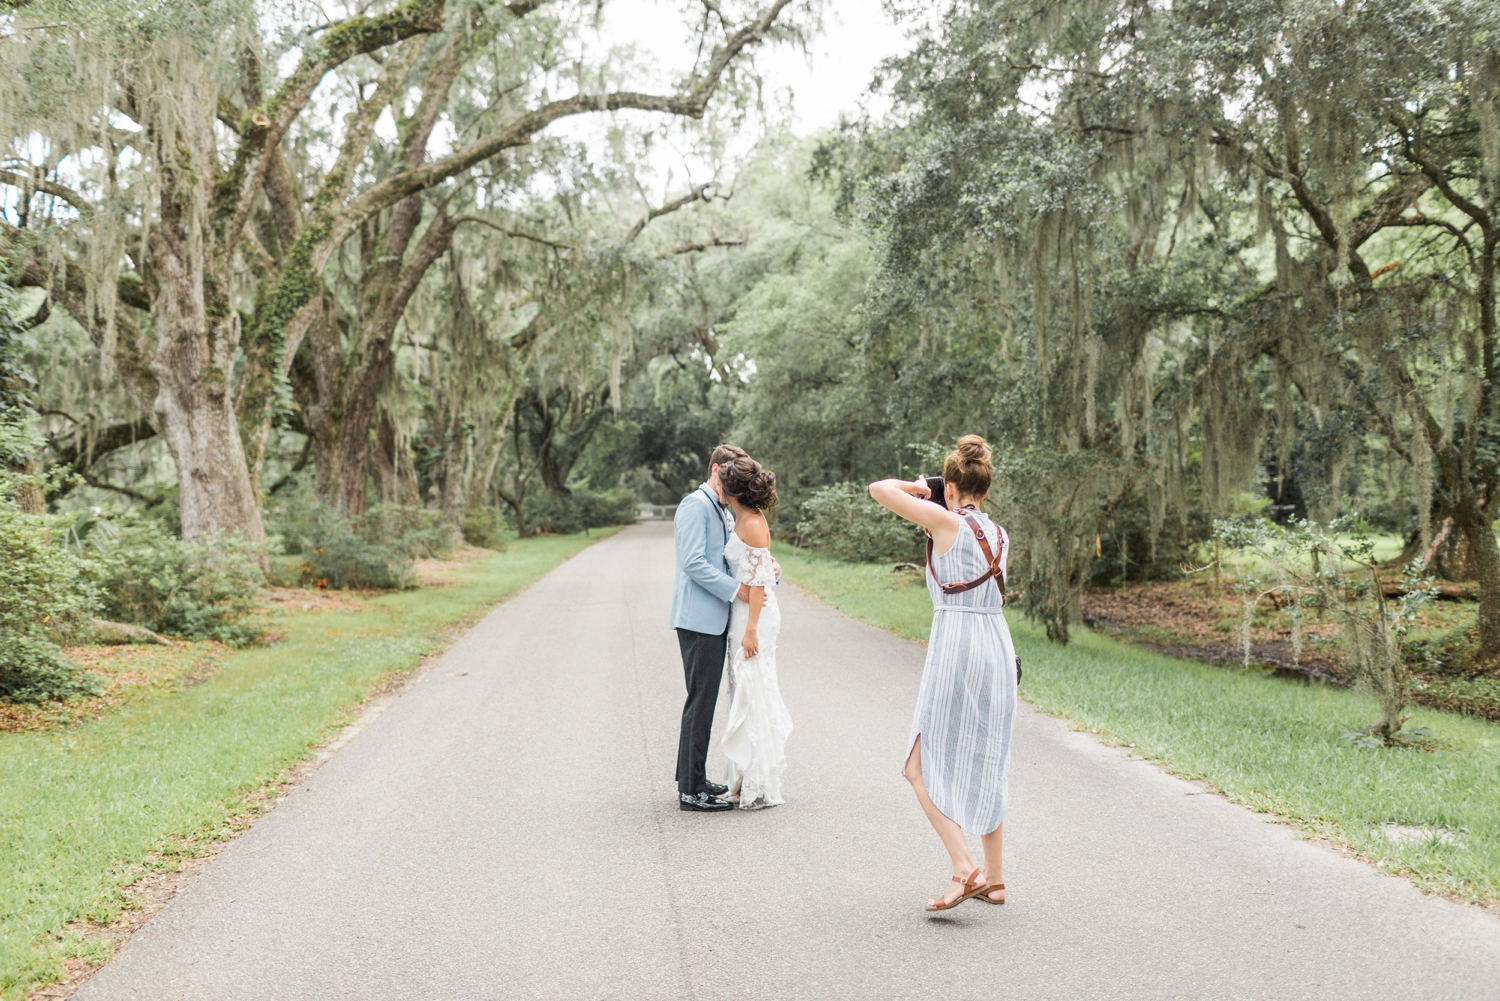 charleston-south-carolina-wedding-photographer-destination-photographer-fine-art-film-wedding_5009.jpg